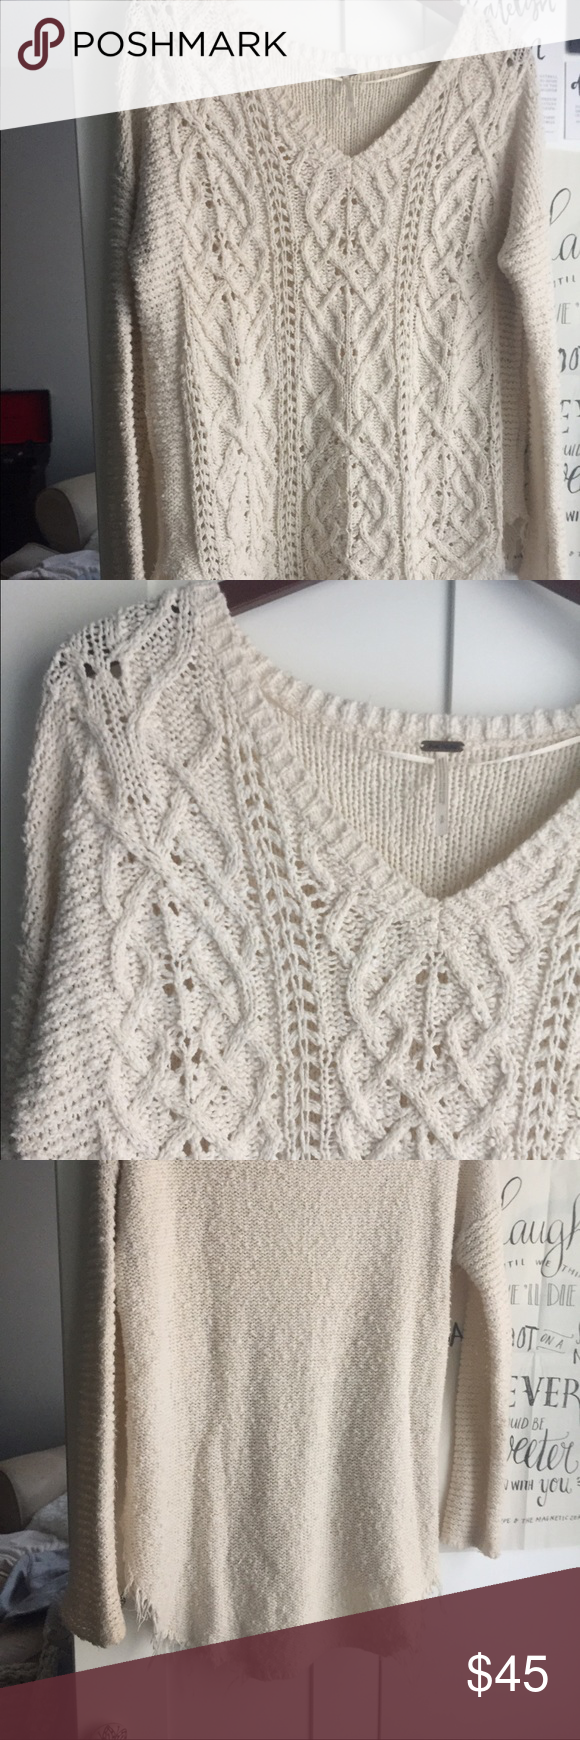 Free people cross my heart sweater Size small cream knit sweater, the edges are frayed naturally, love this sweater and wore it a handful of times! Free People Tops